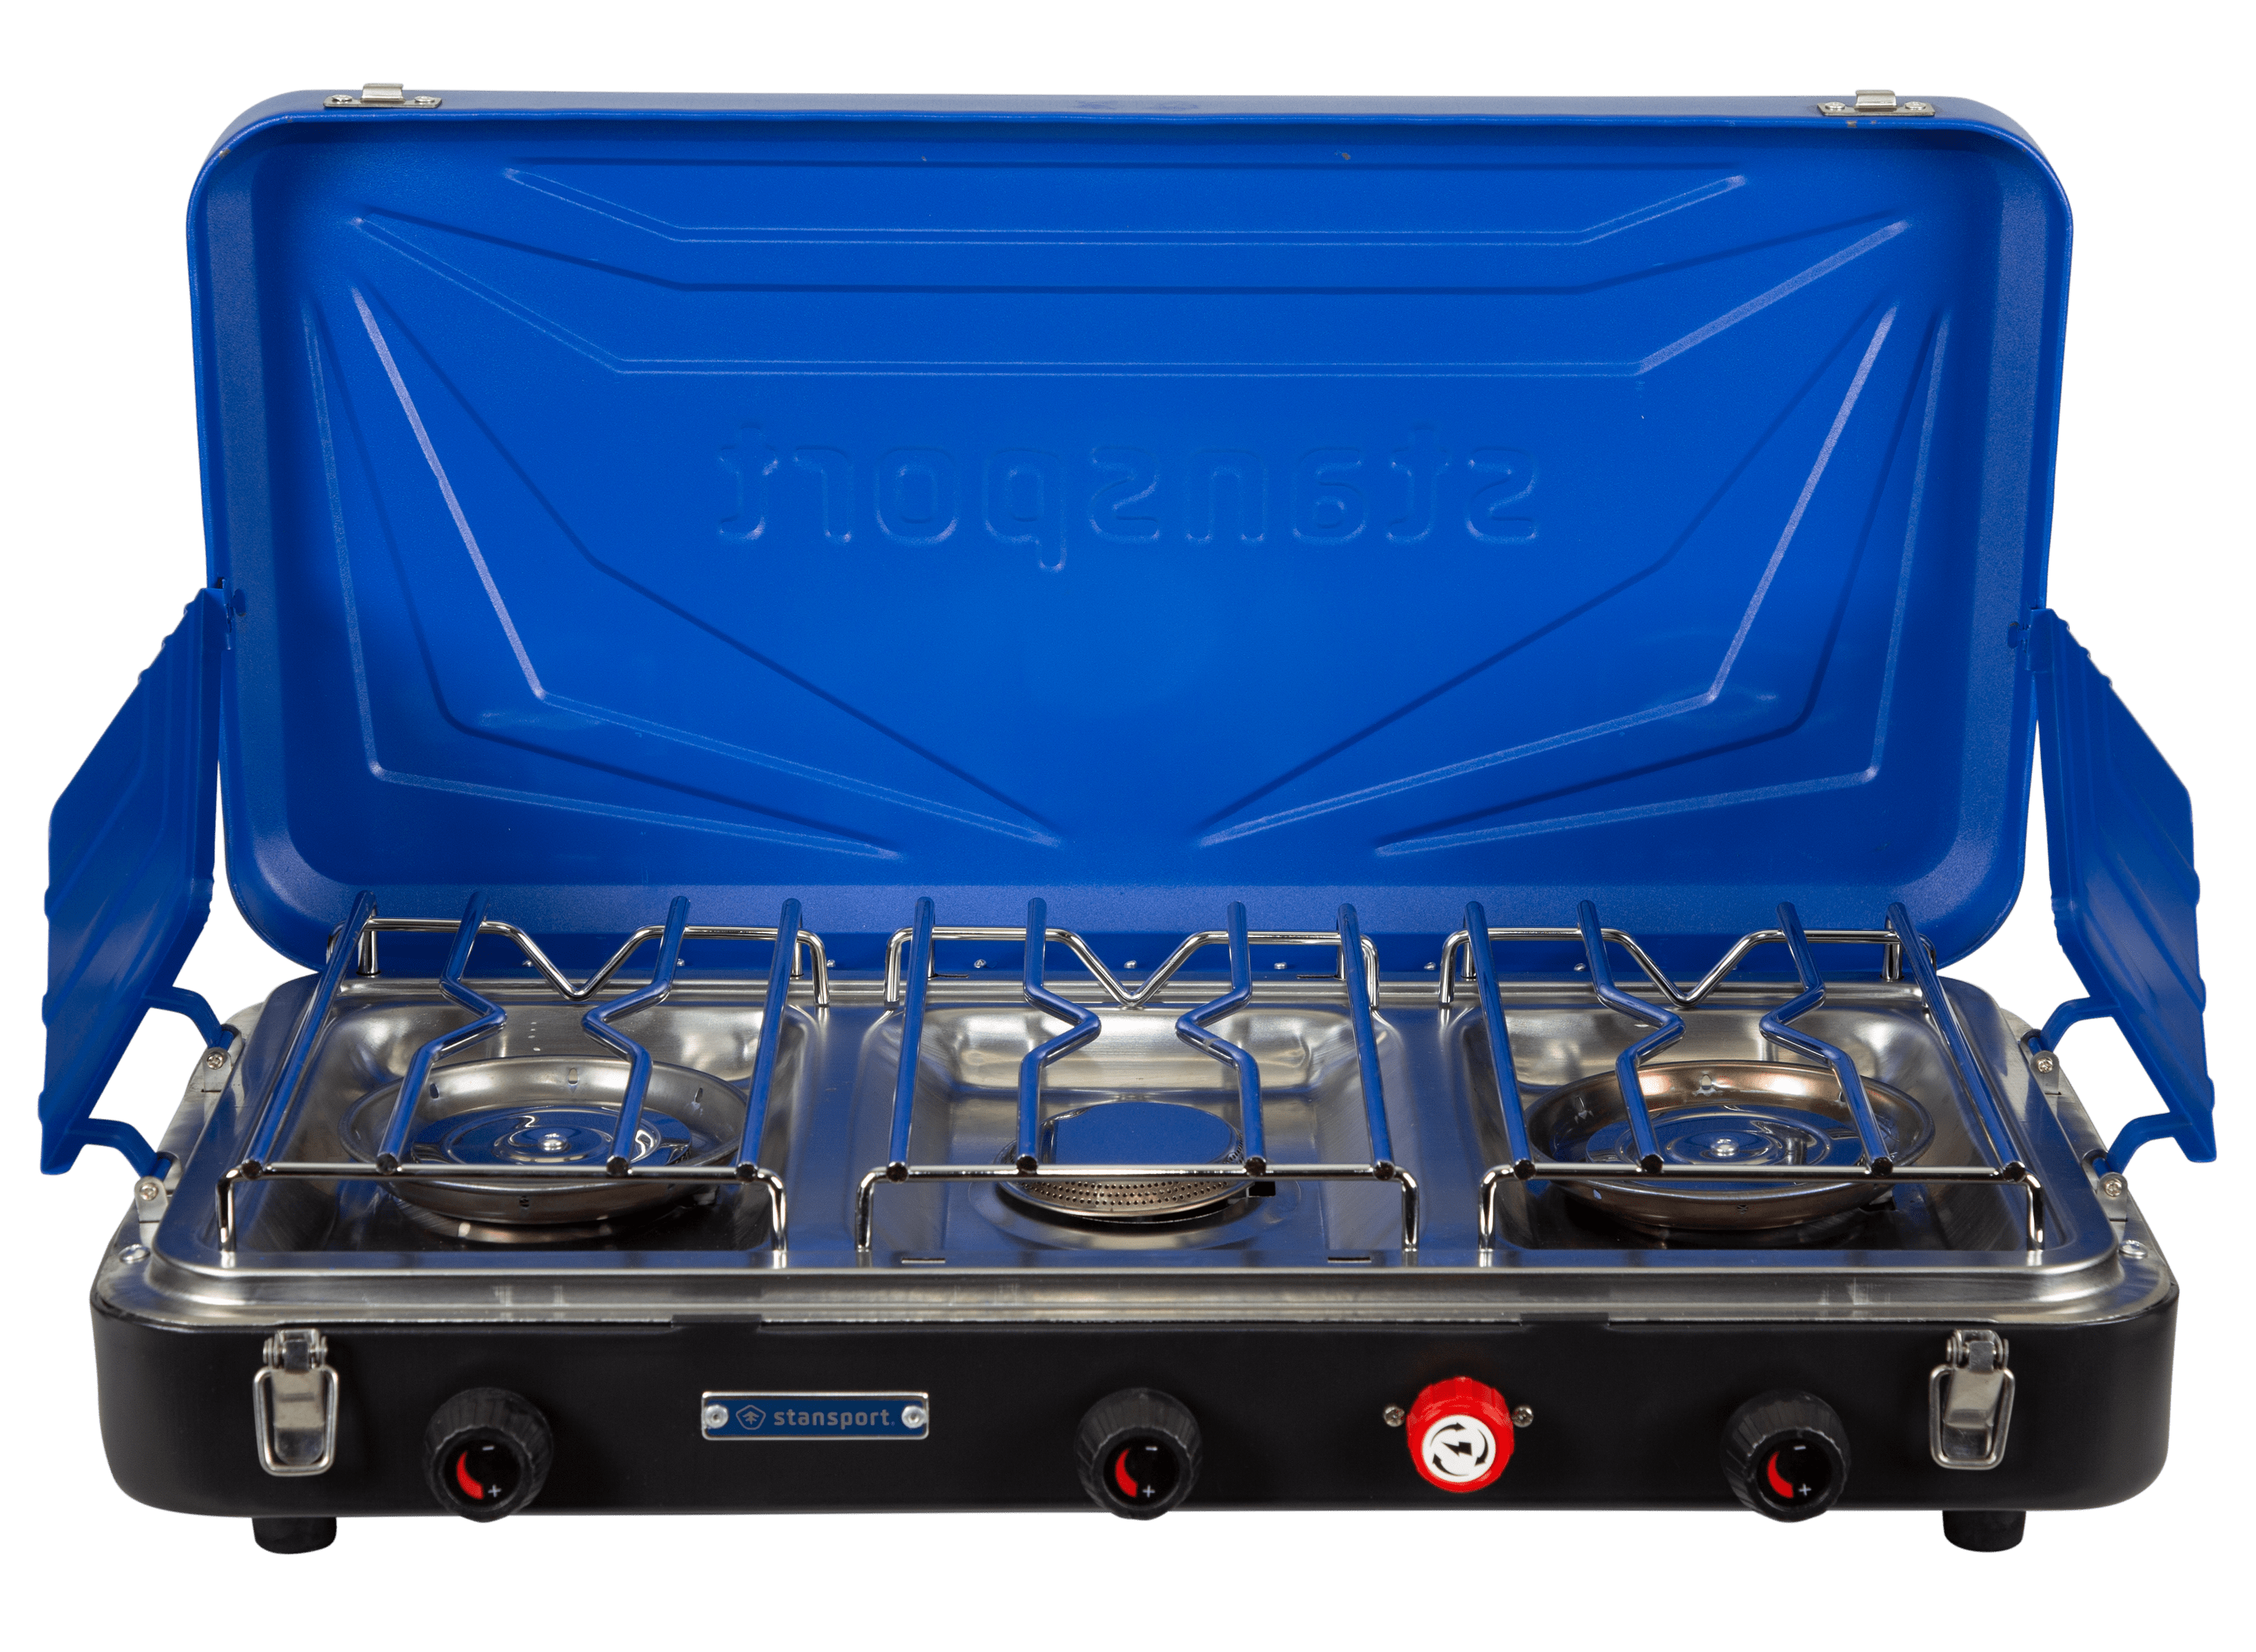 3 Burner Propane Stove Stansport